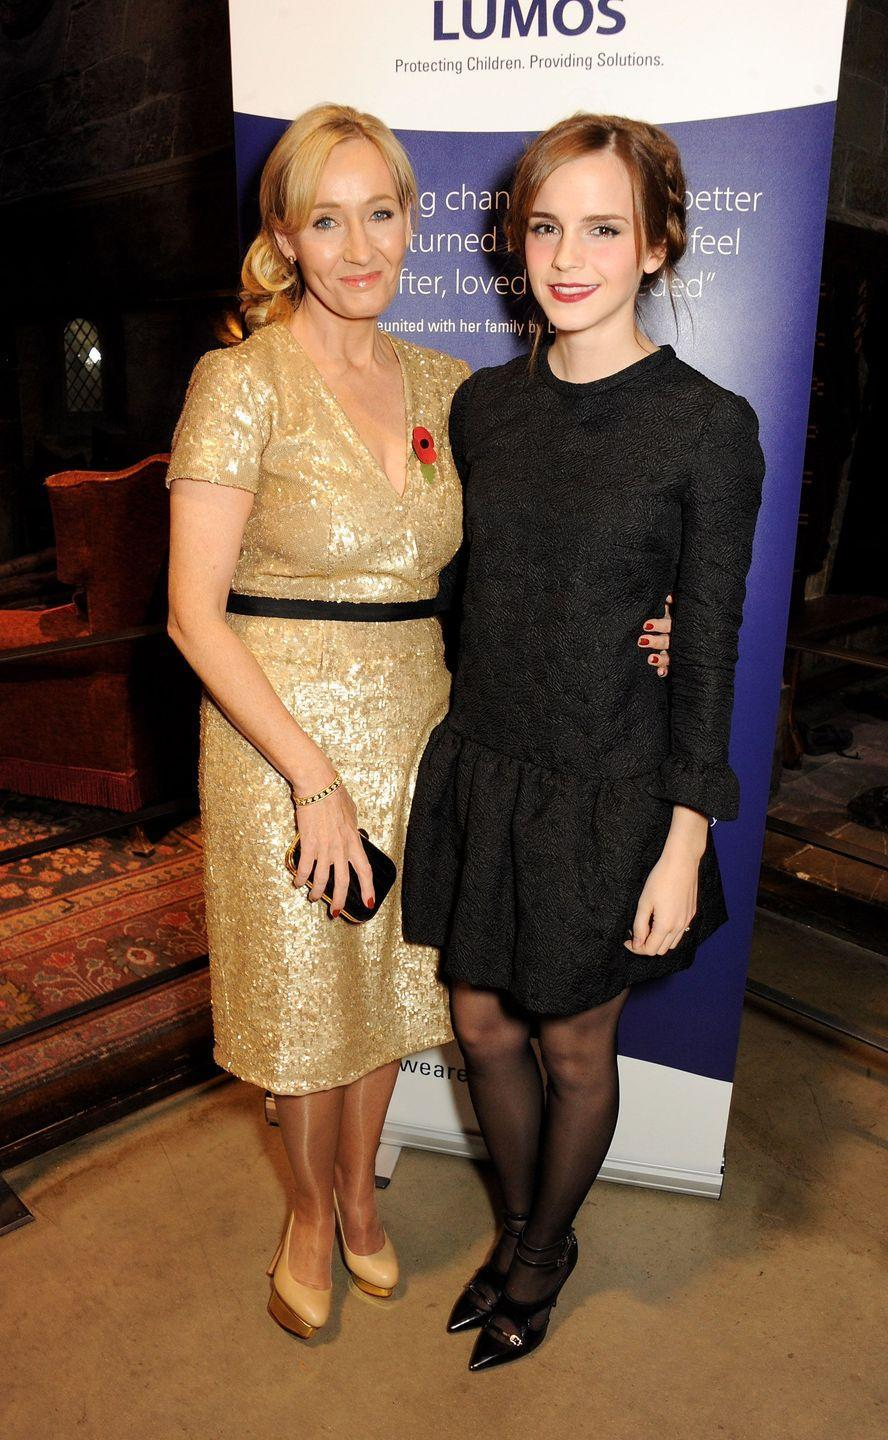 <p>The author and her literary prodigy reunited in 2013 at an event for Rowling's charity Lumos.</p>